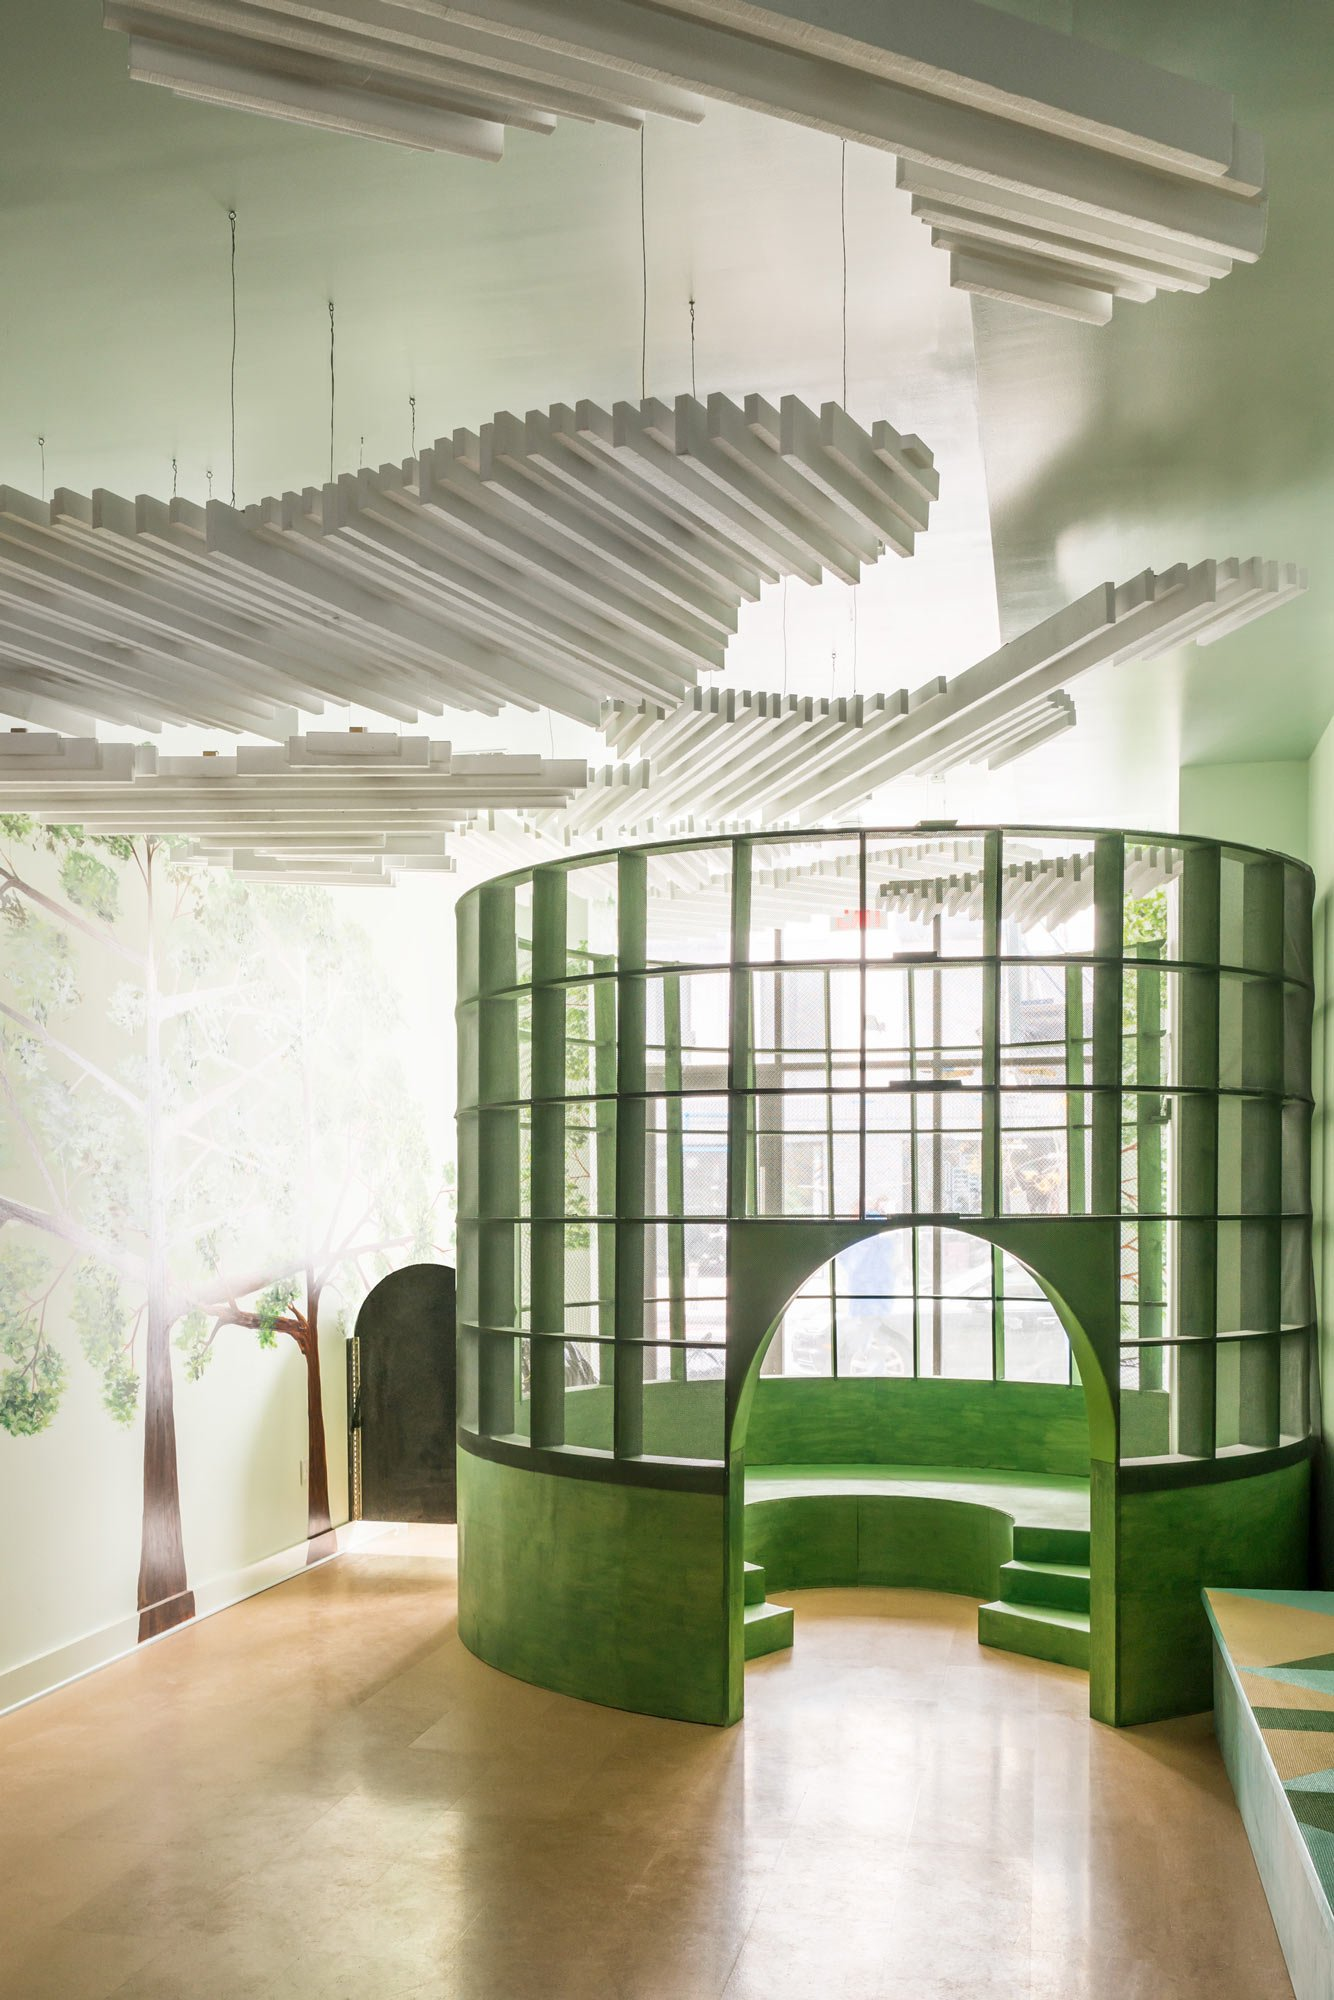 Indoor-Spielplatz in Brooklyn von Architensions